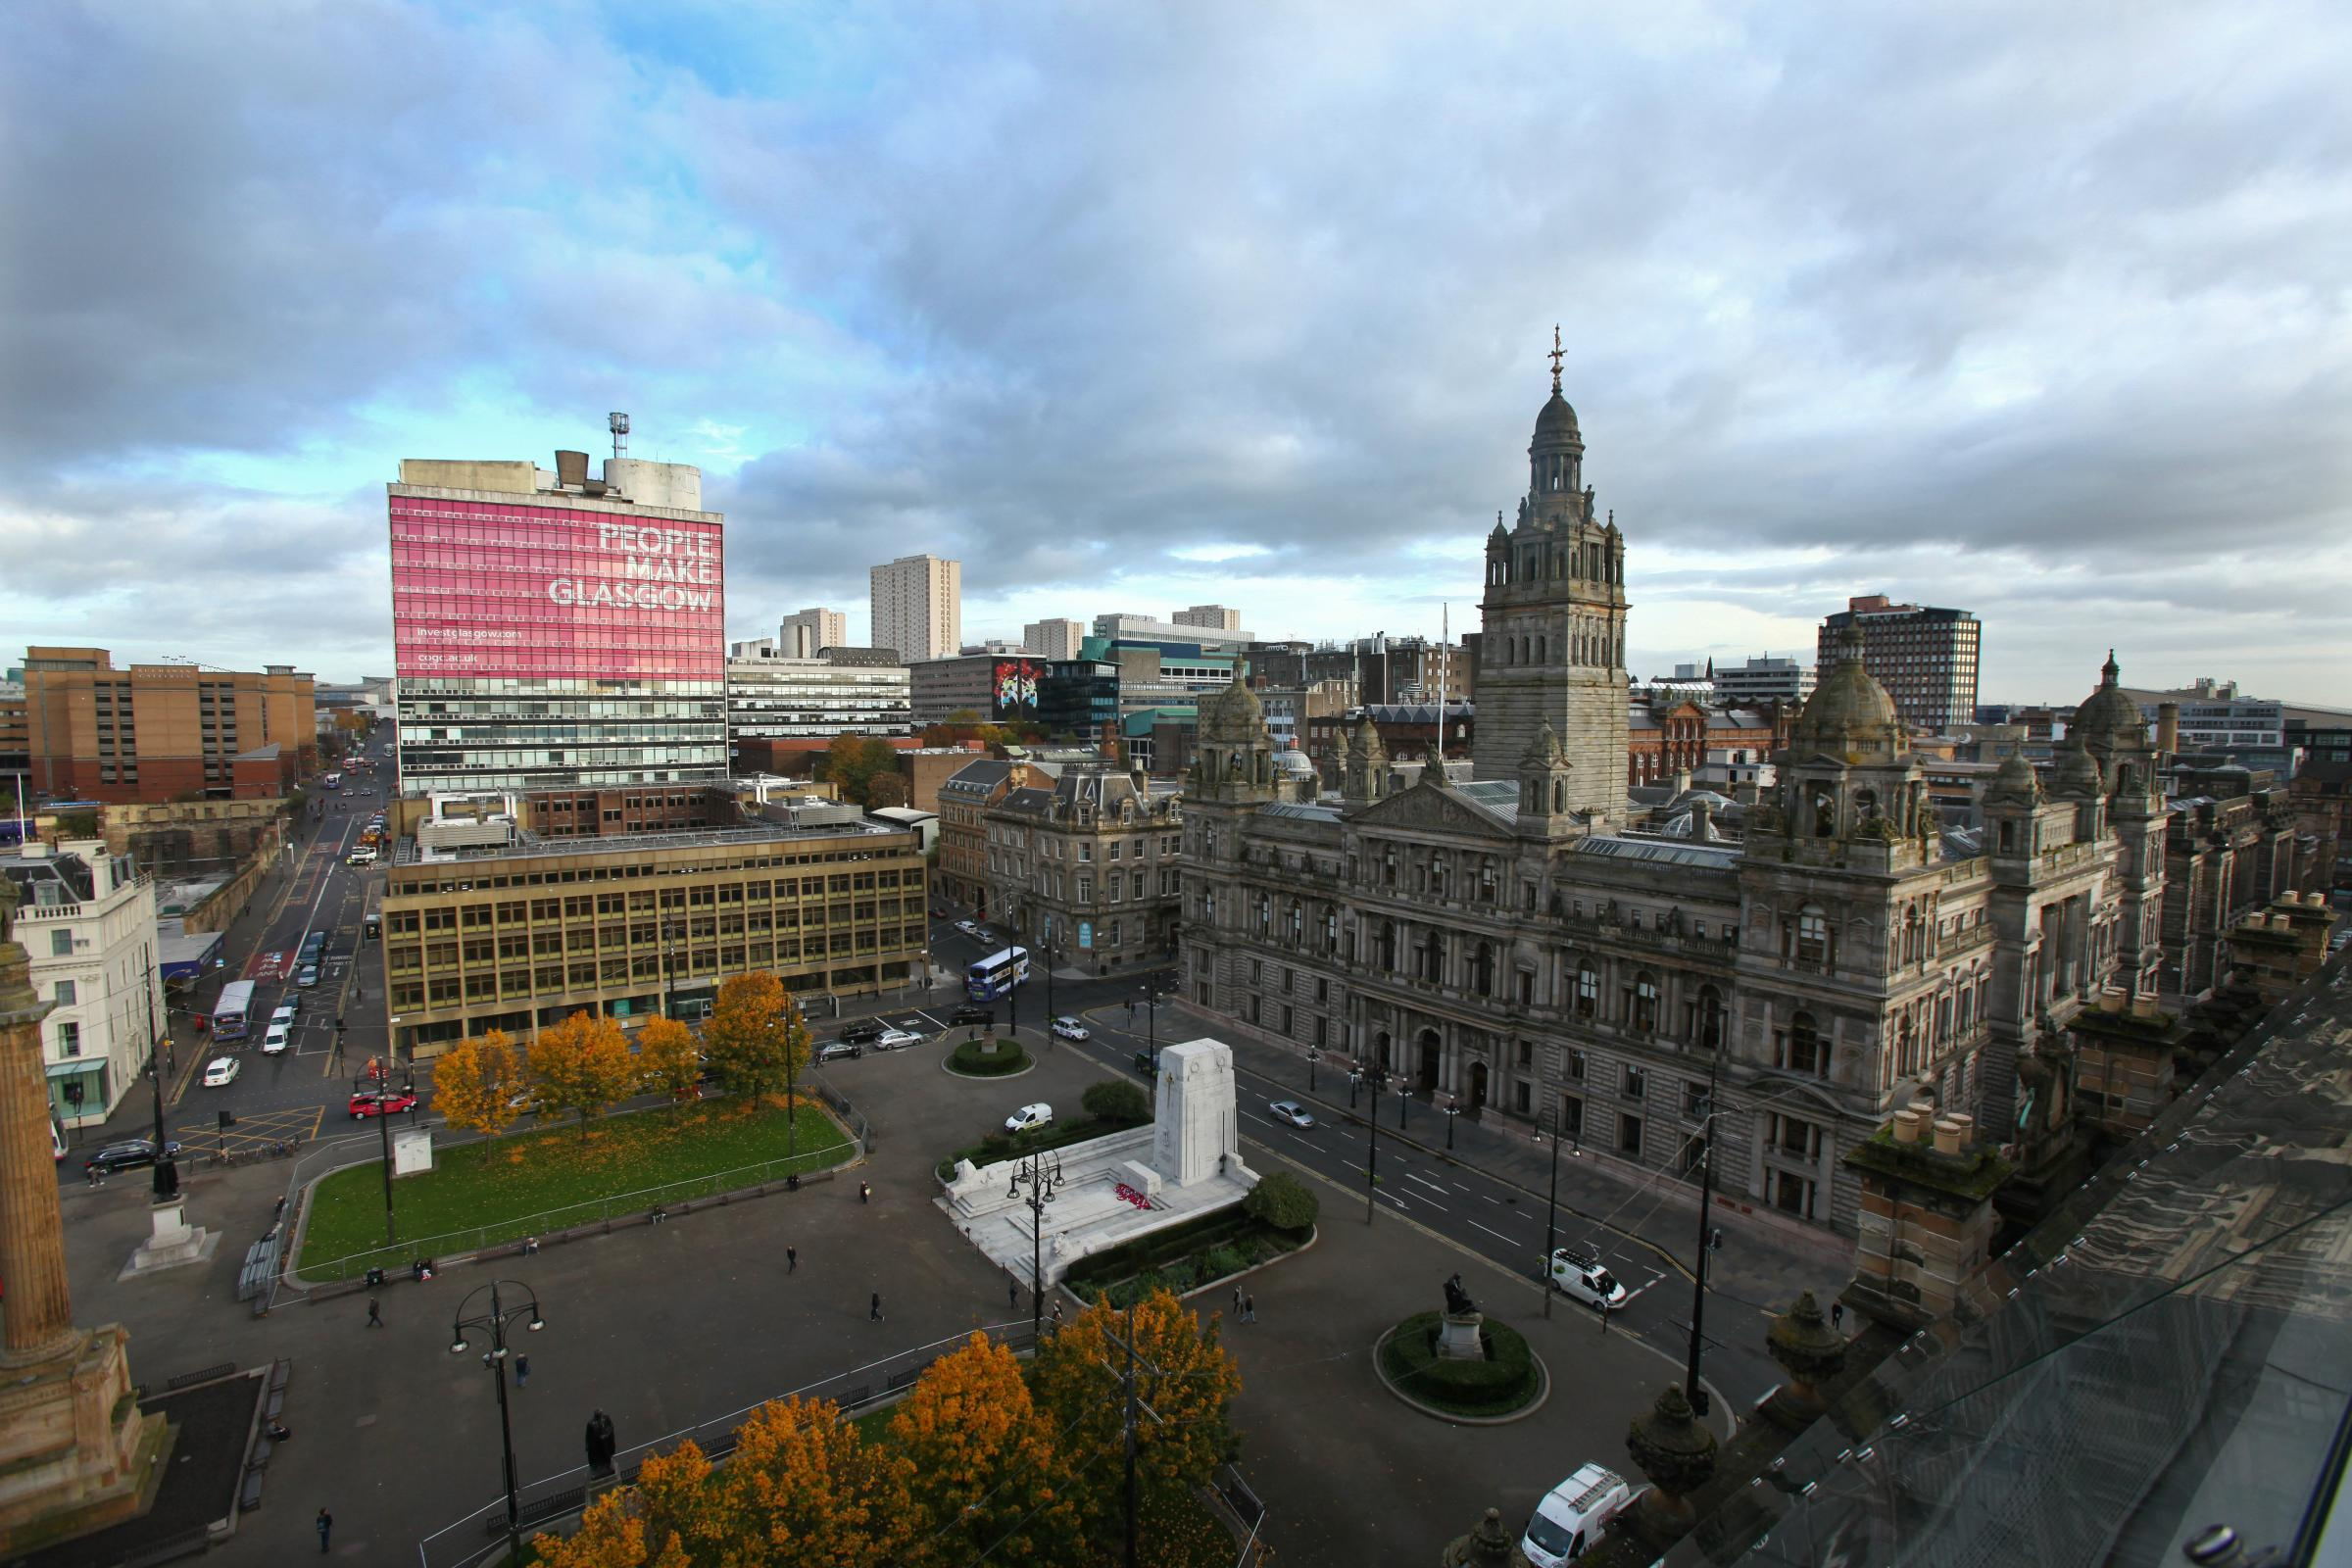 City urged to train 'carbon literate' leaders